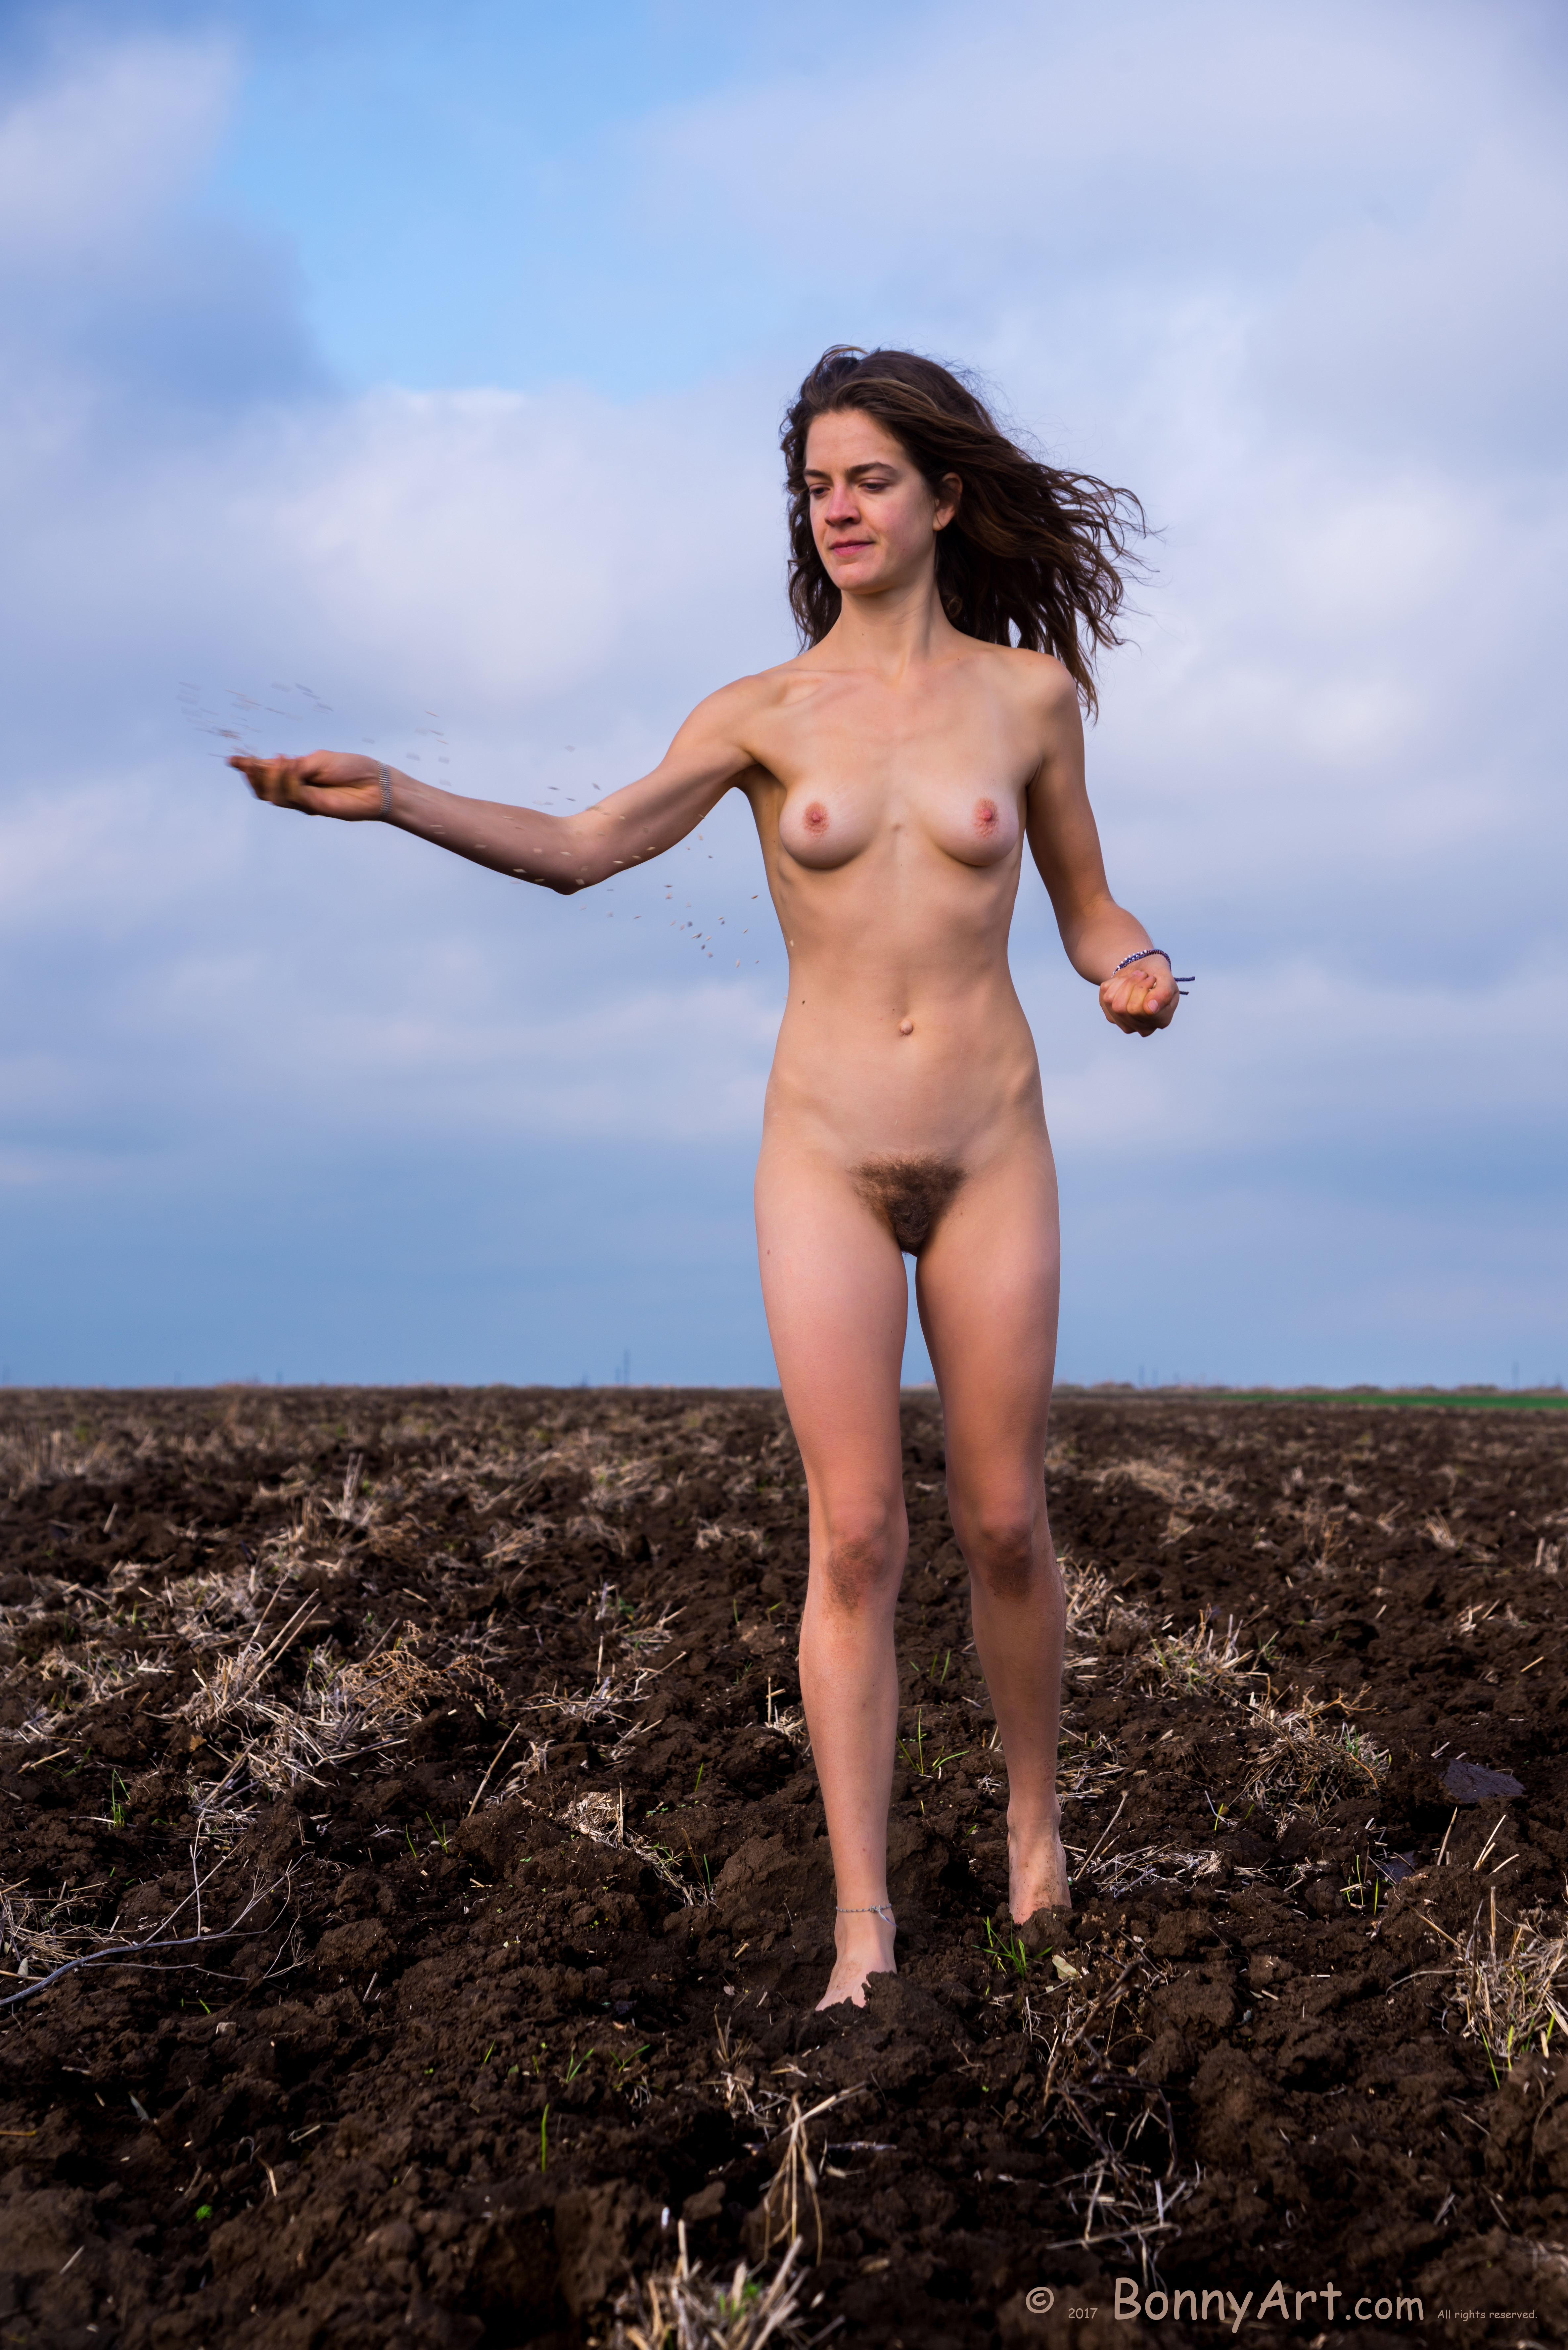 Nude Woman Sowing Wheat in the Field HD